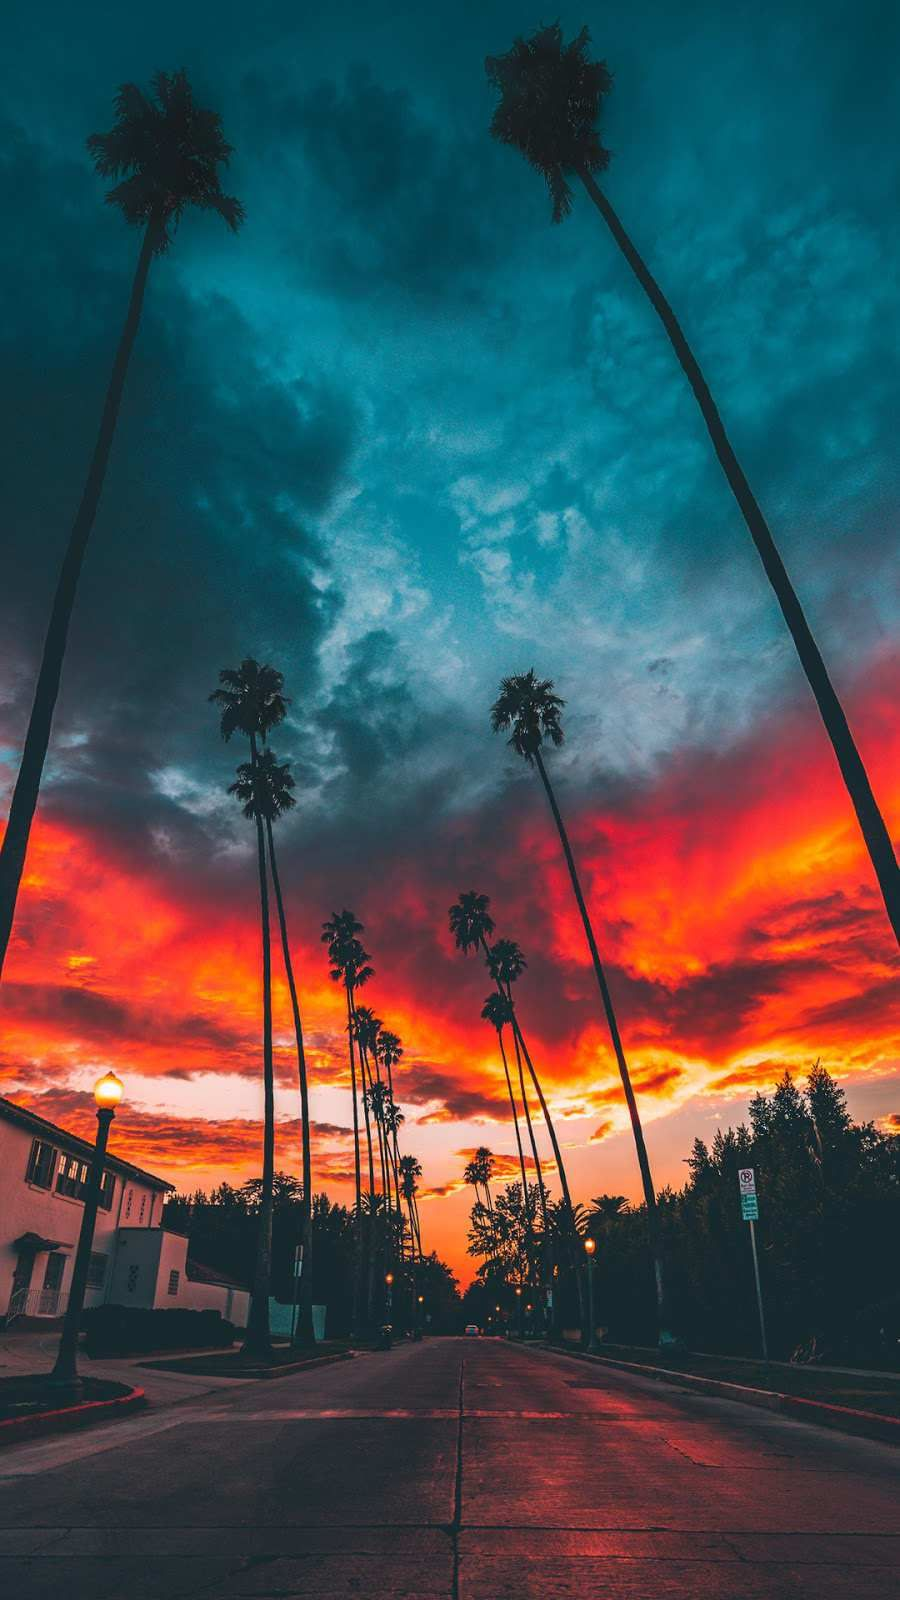 Psychedelic Wallpapers For Iphone 6 Beautiful Sunset Miami View Iphone Wallpaper Wallpaper